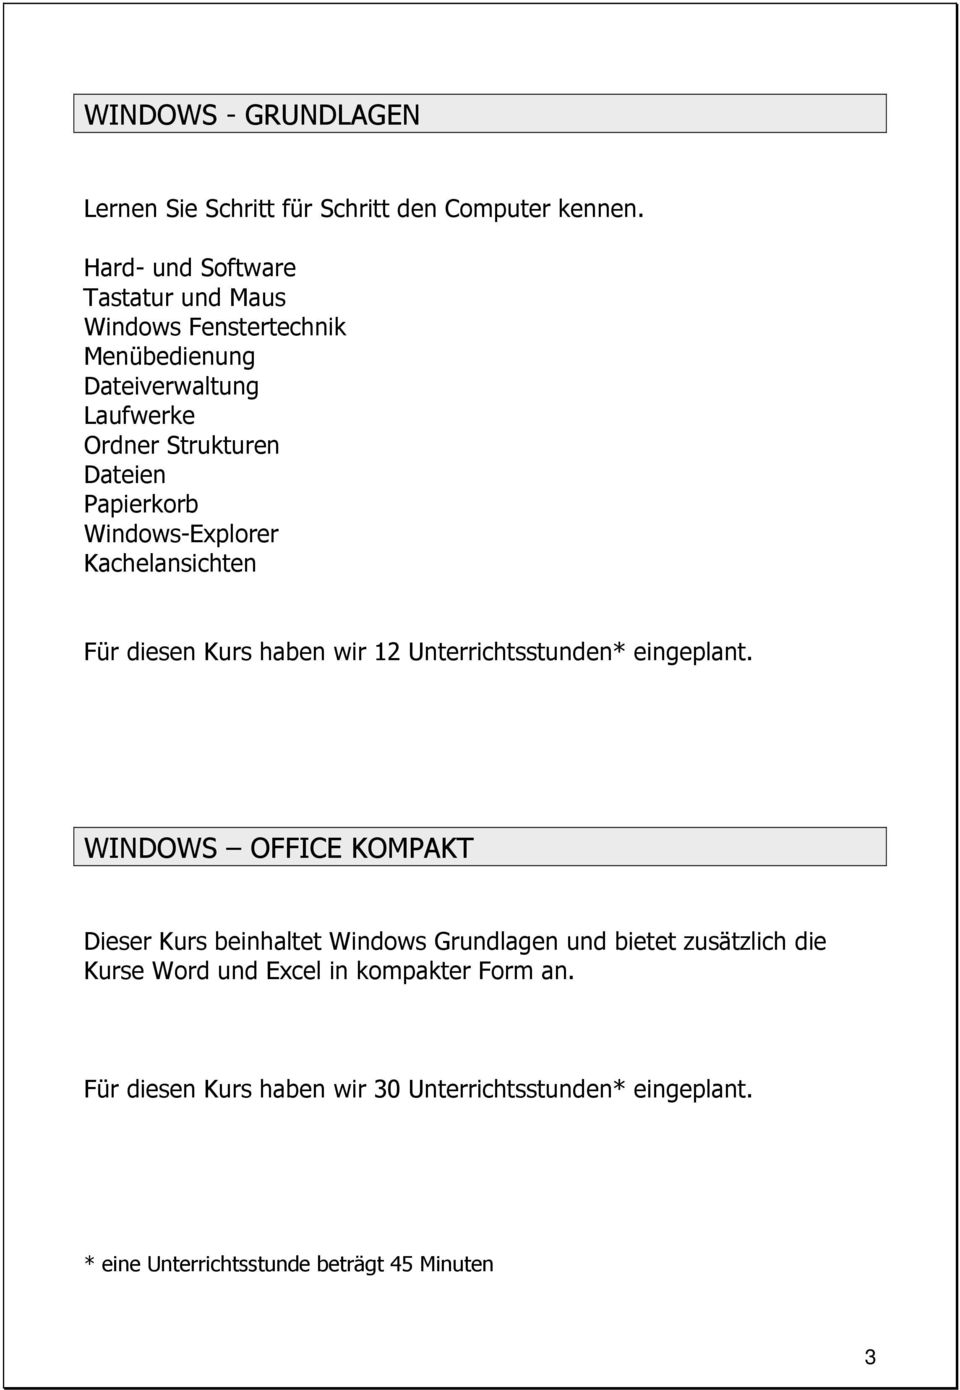 Dateien Papierkorb Windows-Explorer Kachelansichten WINDOWS OFFICE KOMPAKT Dieser Kurs beinhaltet Windows Grundlagen und